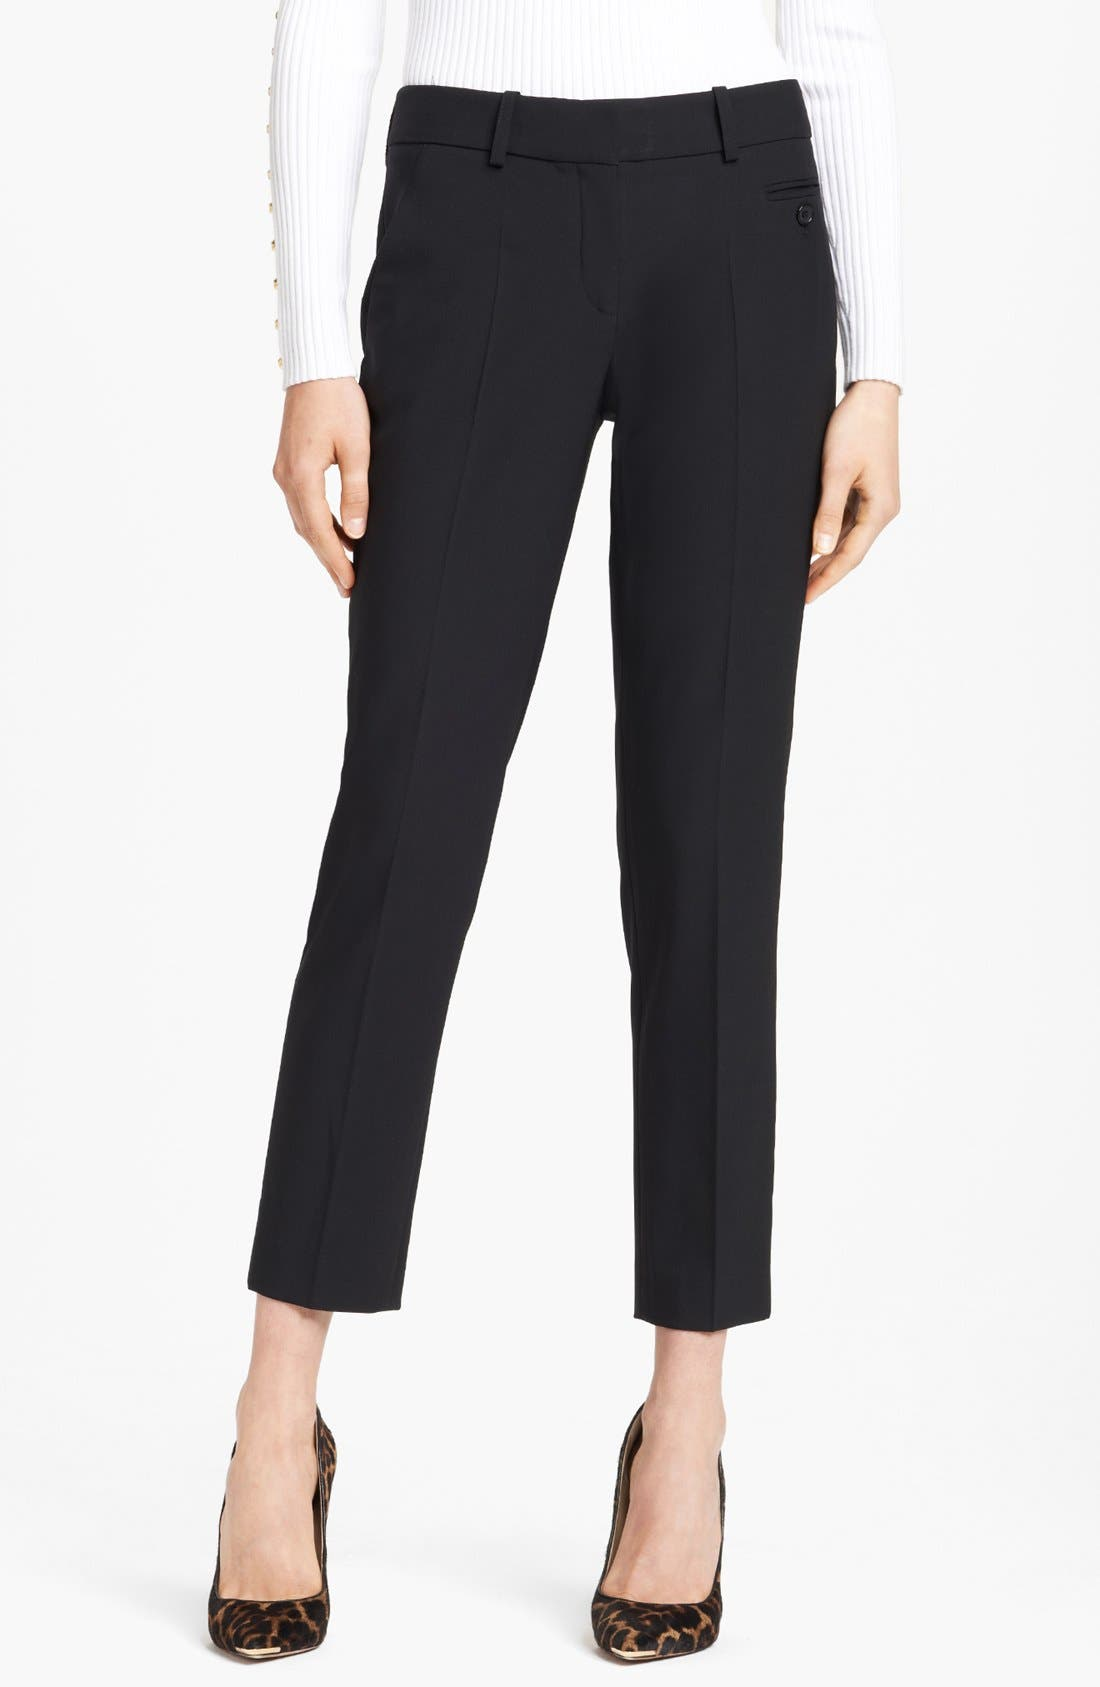 Main Image - Michael Kors 'Samantha' Skinny Stretch Wool Pants